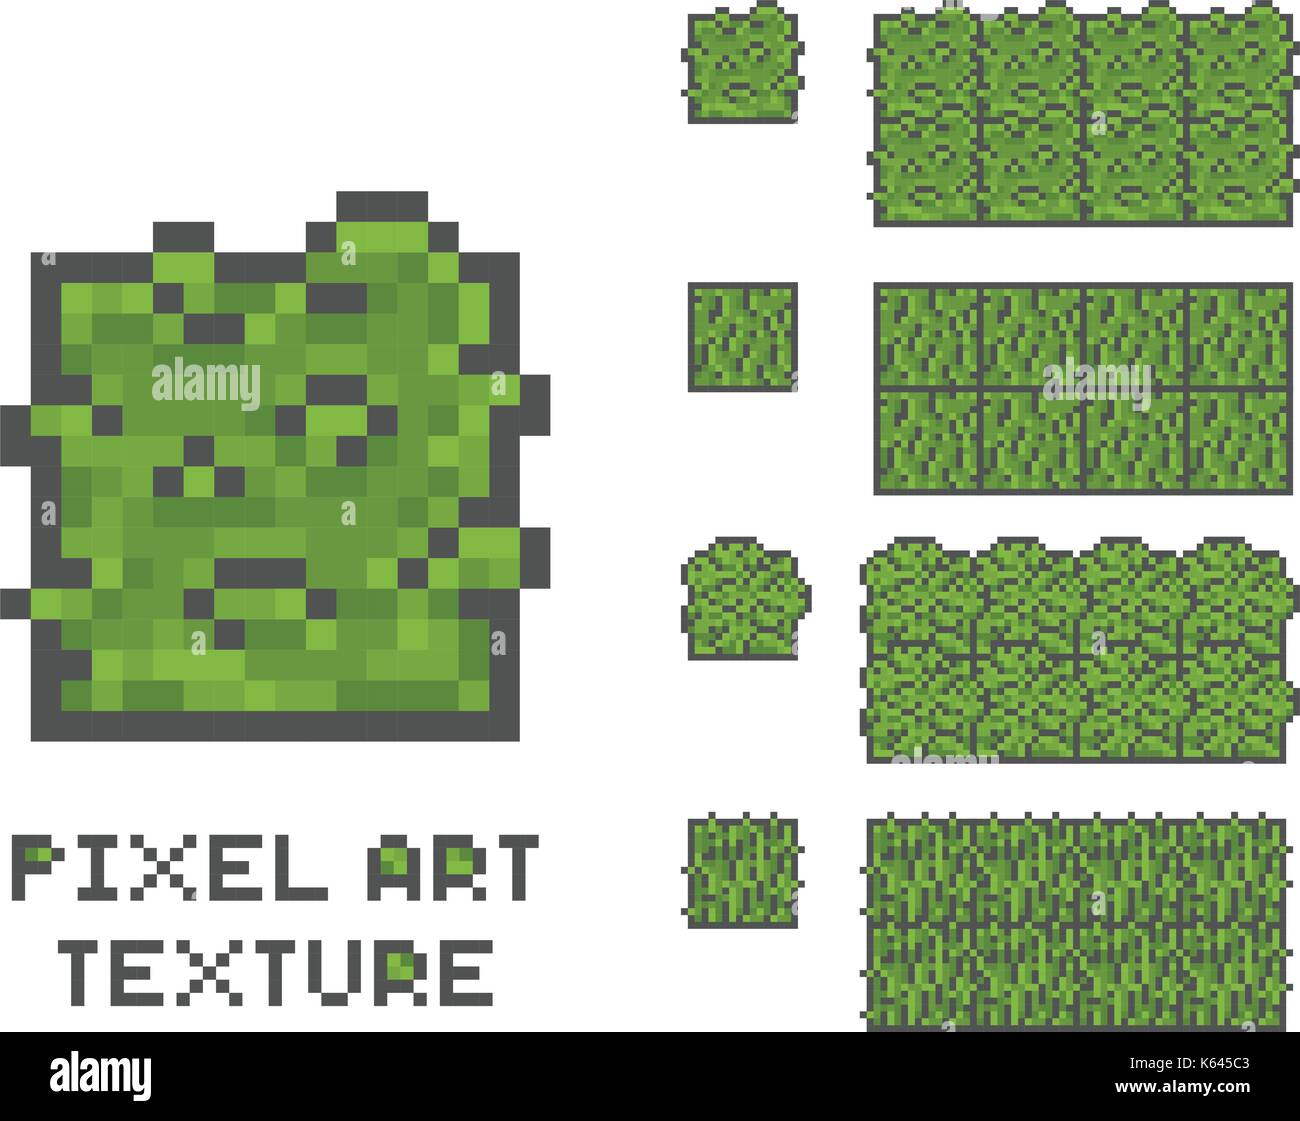 grass texture game low poly pixel art bit game sprite illustration green grass tree pixelated pattern seamless texture background